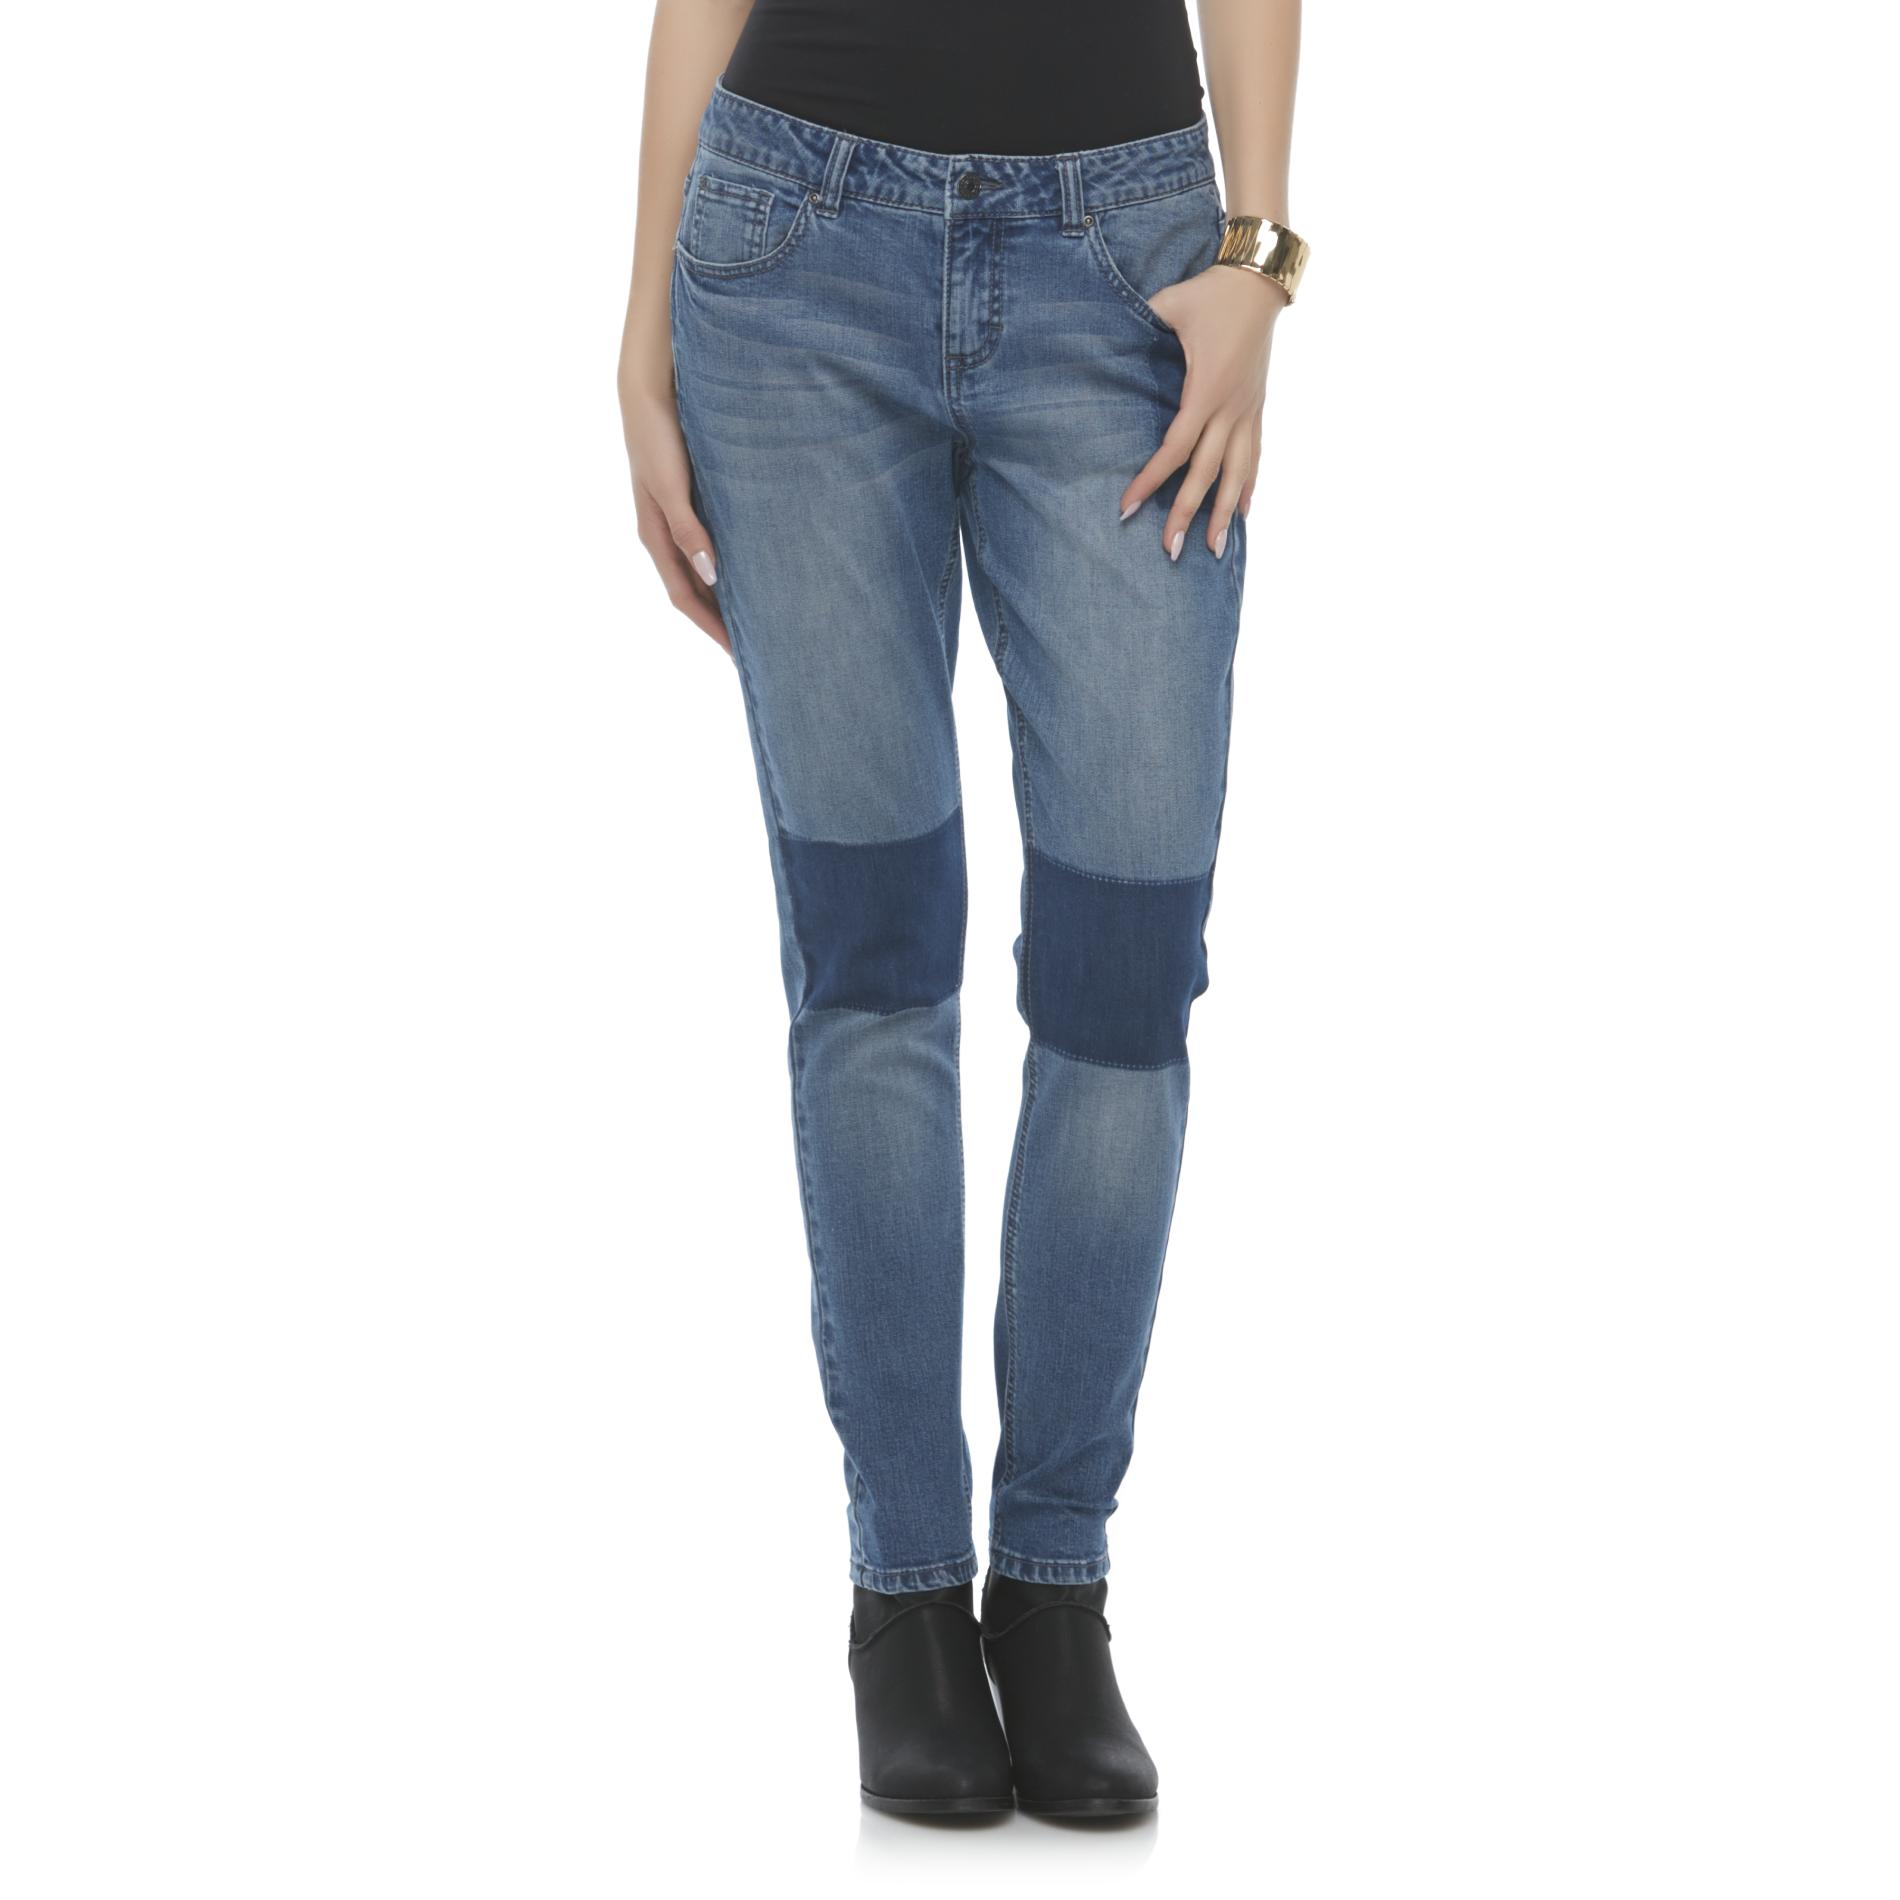 Canyon River Blues Women's Skinny Jeans